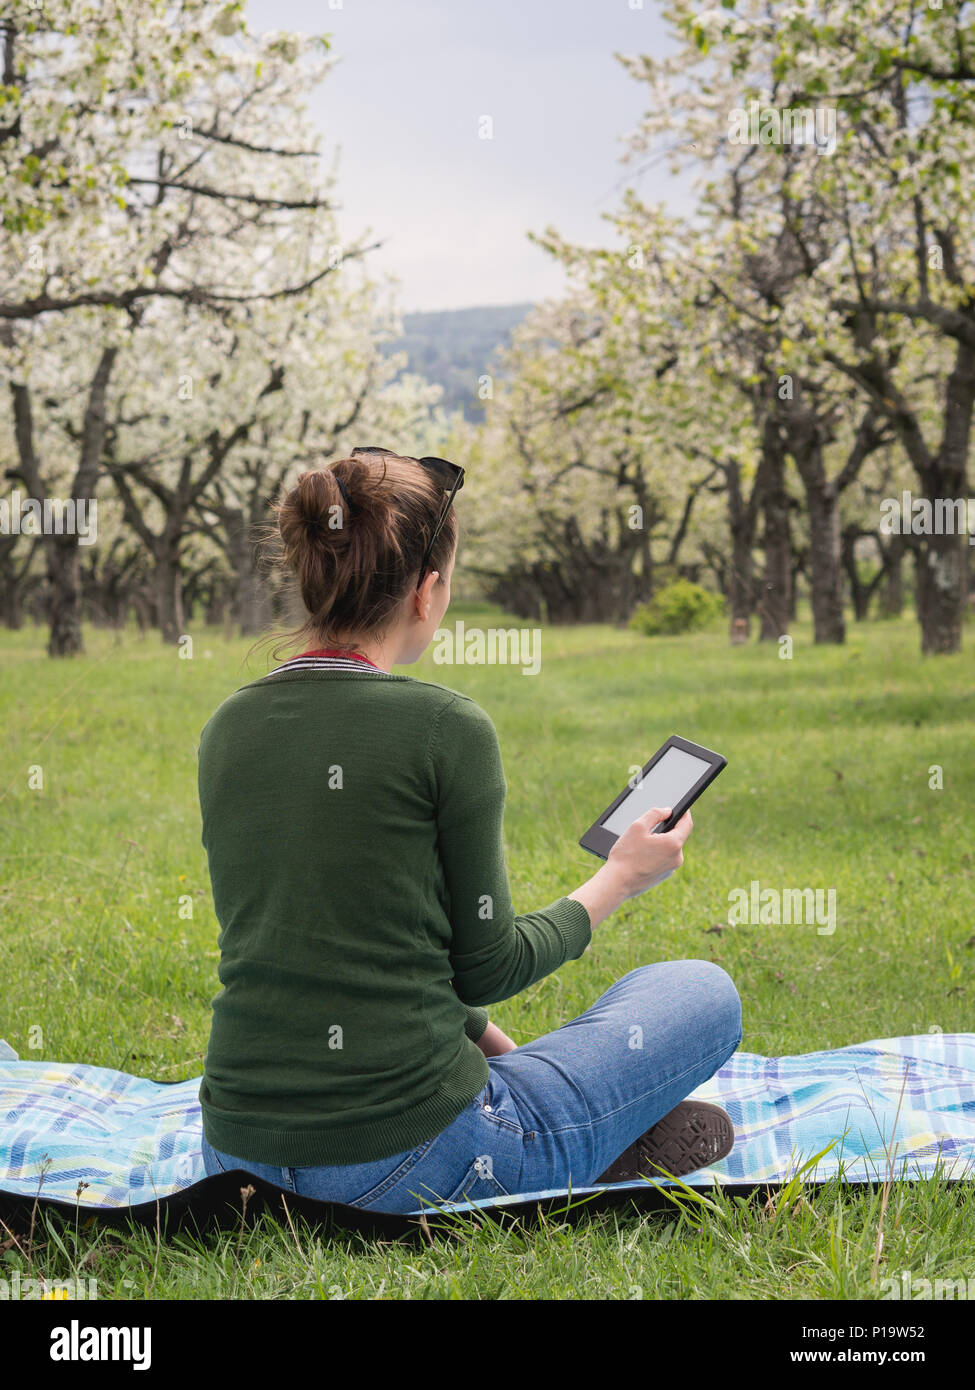 Rear view of a young woman outdoors reading on her ebook - Stock Image